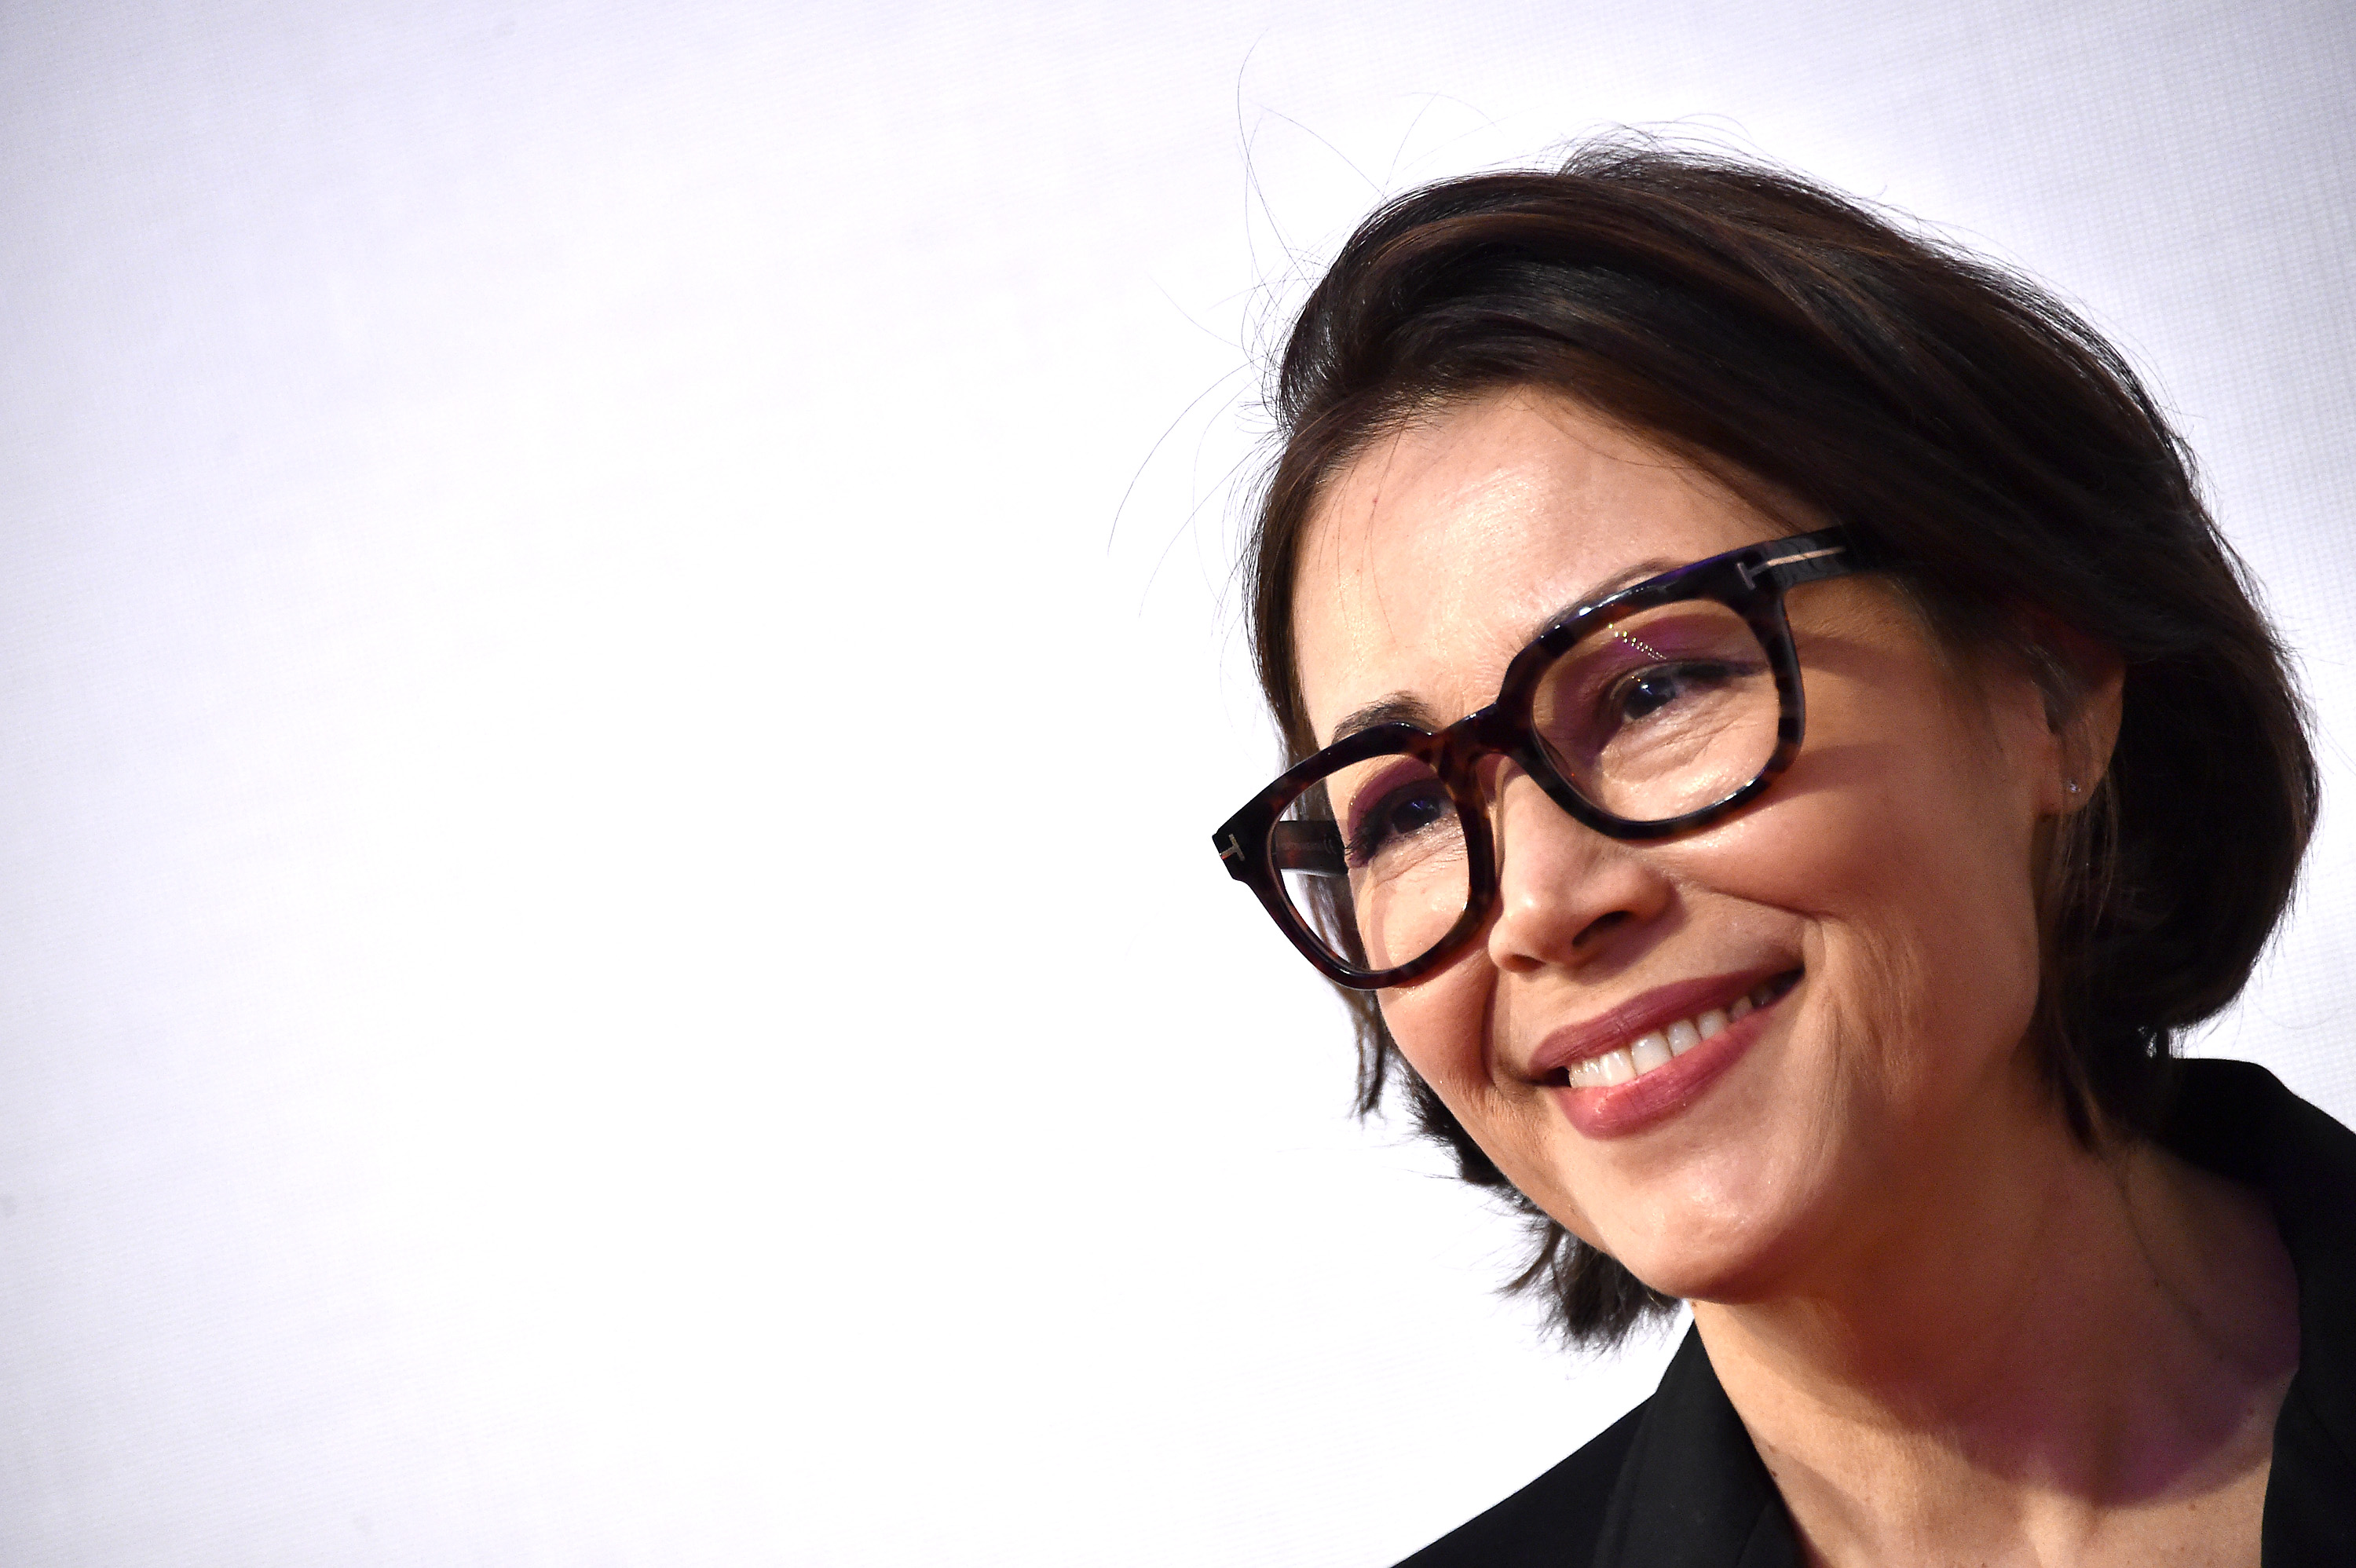 Ann Curry at the 2016 Tribeca Film Festival in New York on April 18, 2016.